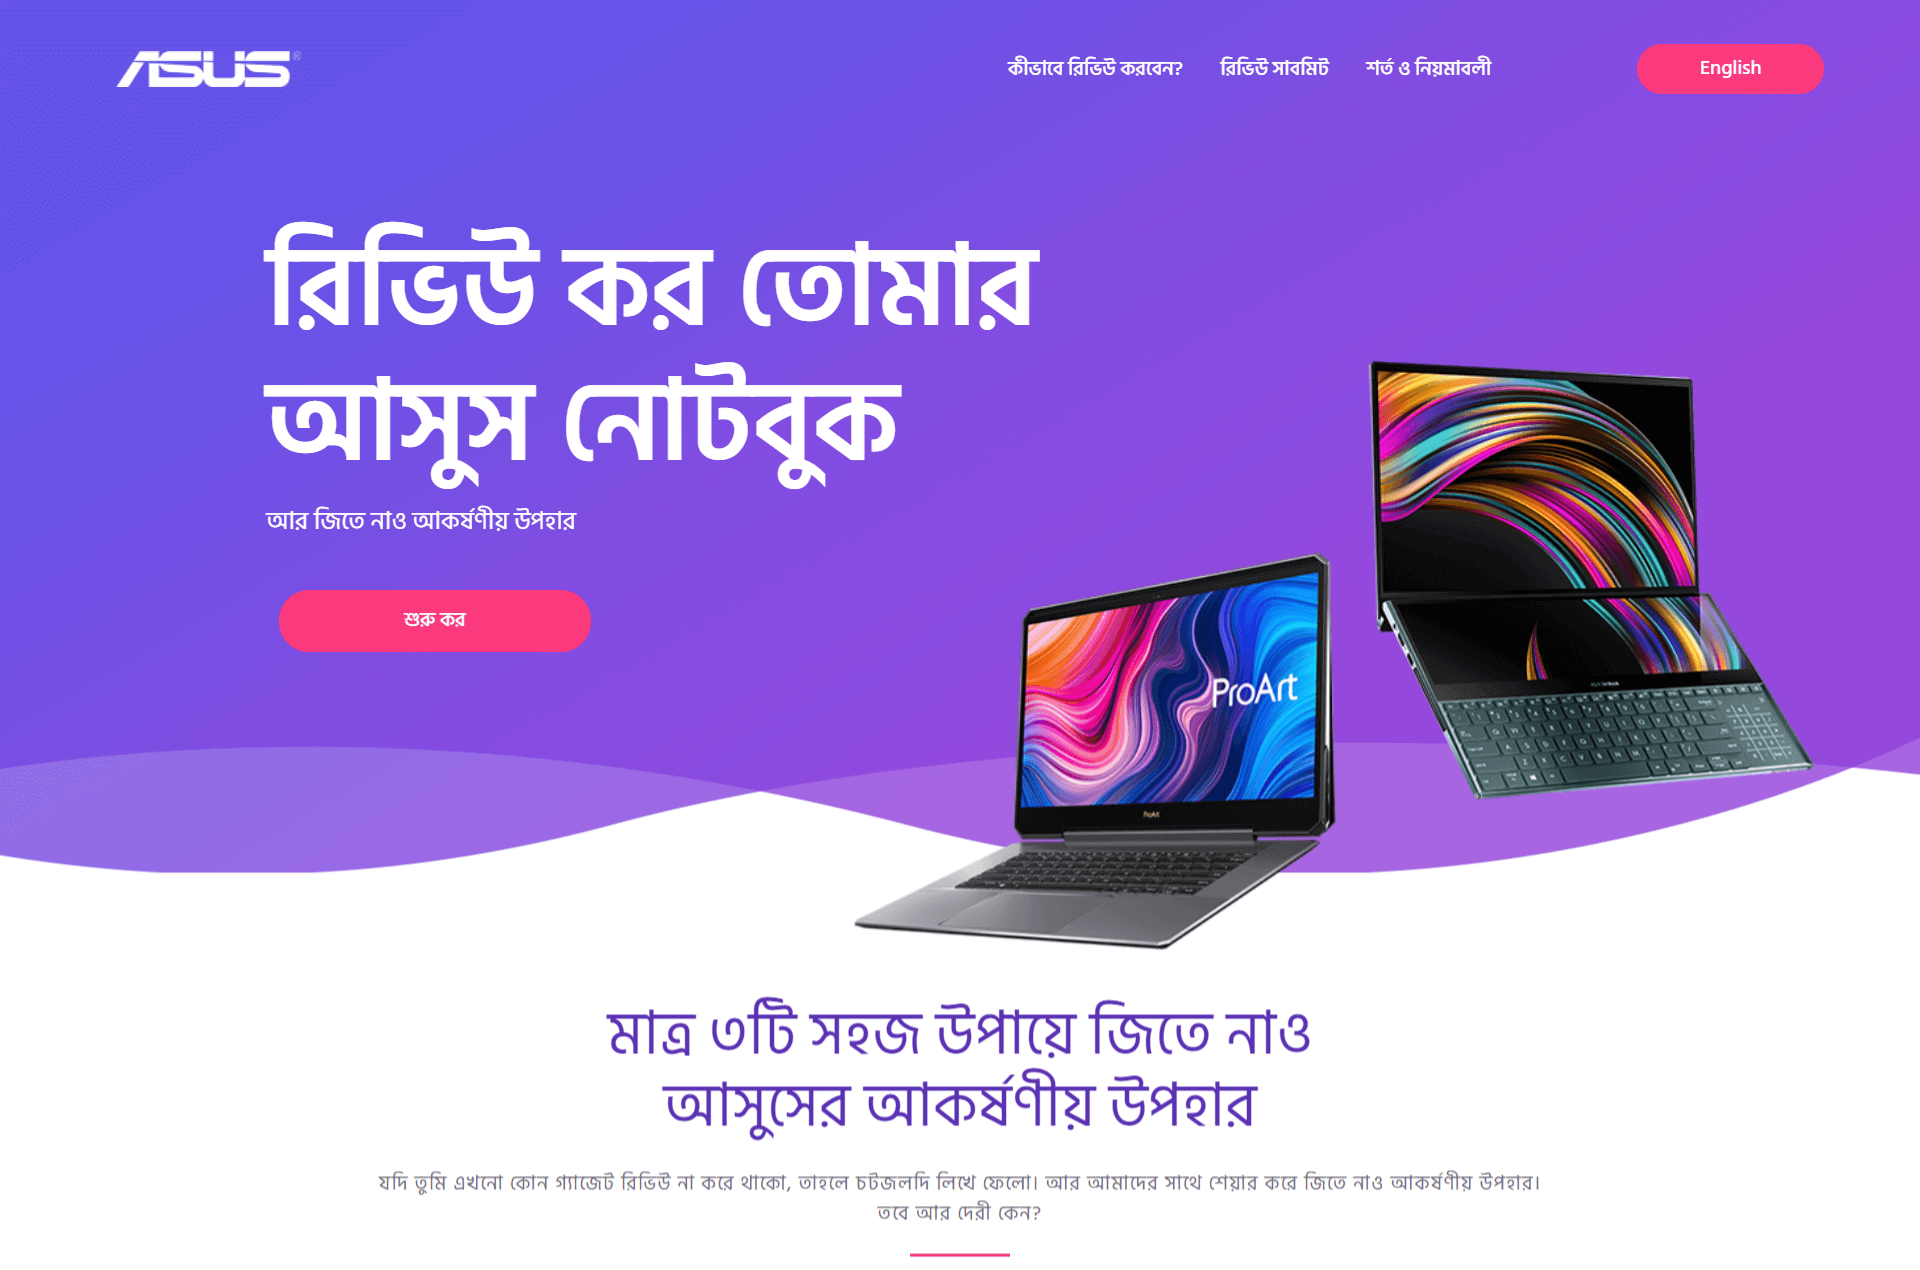 Laptop review user generated content campaign Bangla microsite